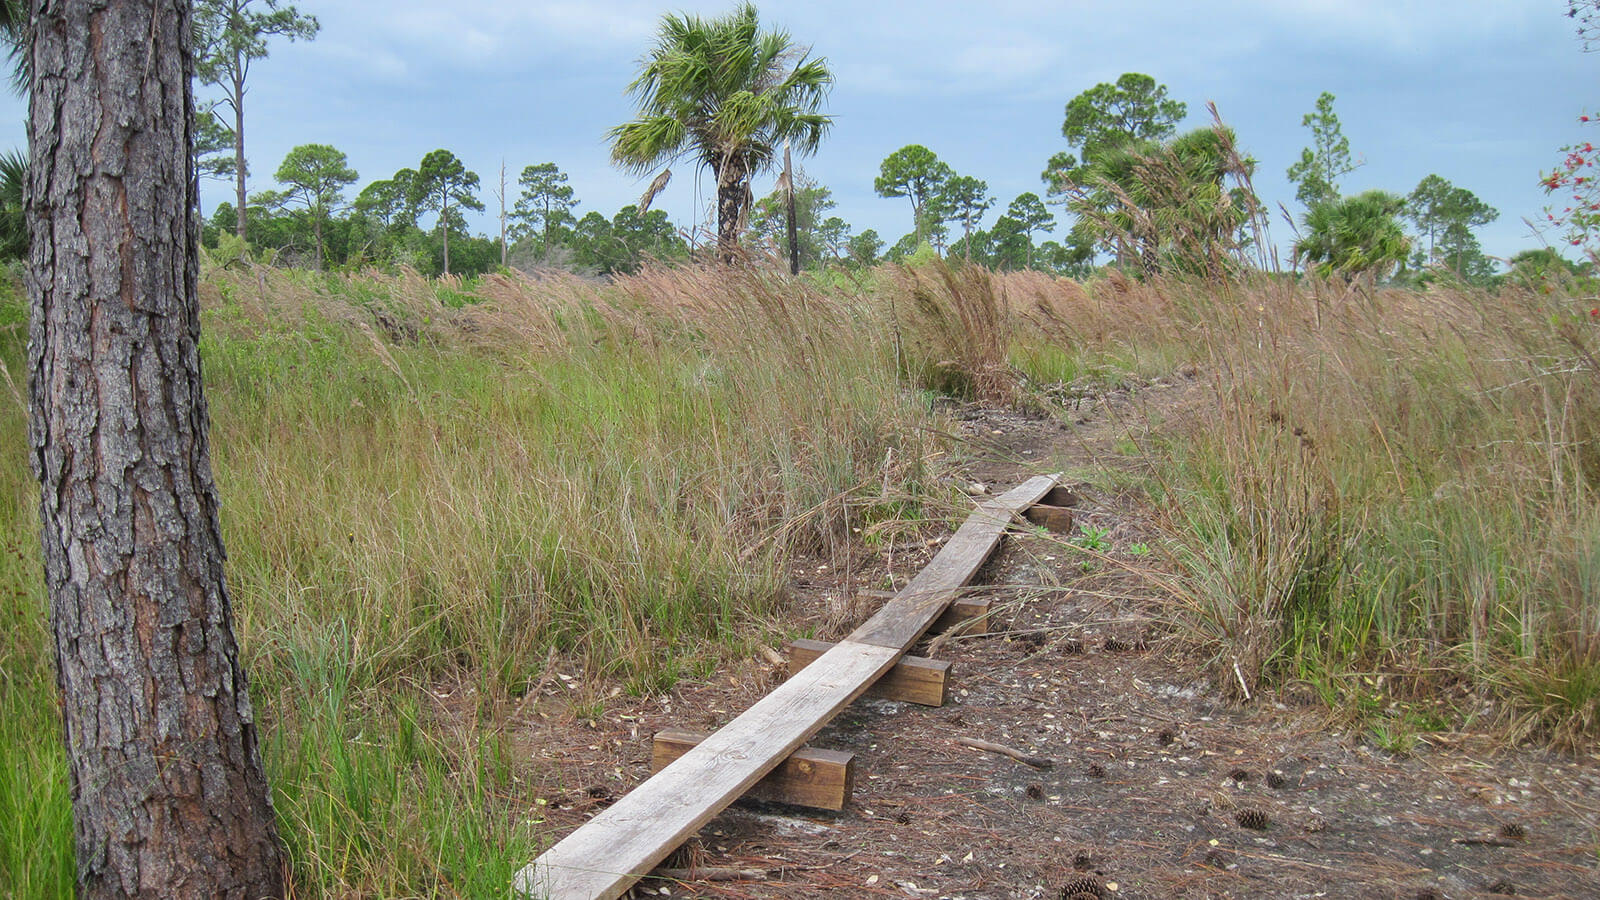 Bog bridge over dry streambed